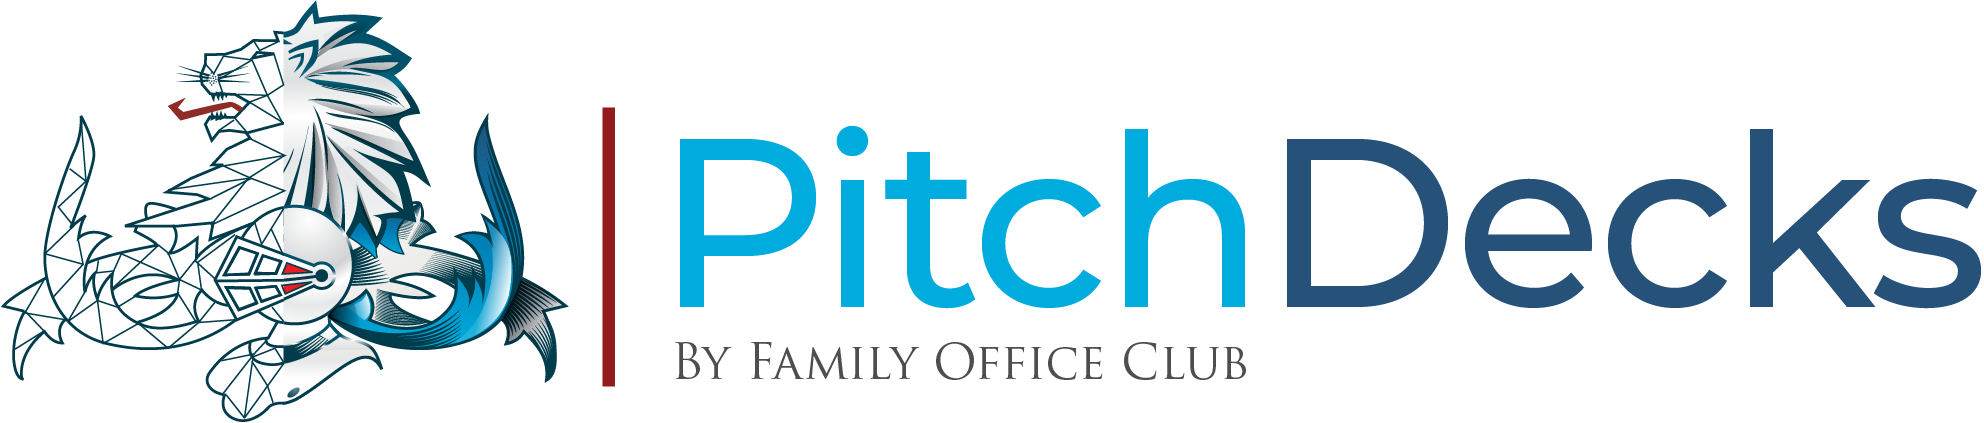 Pitch Decks.com